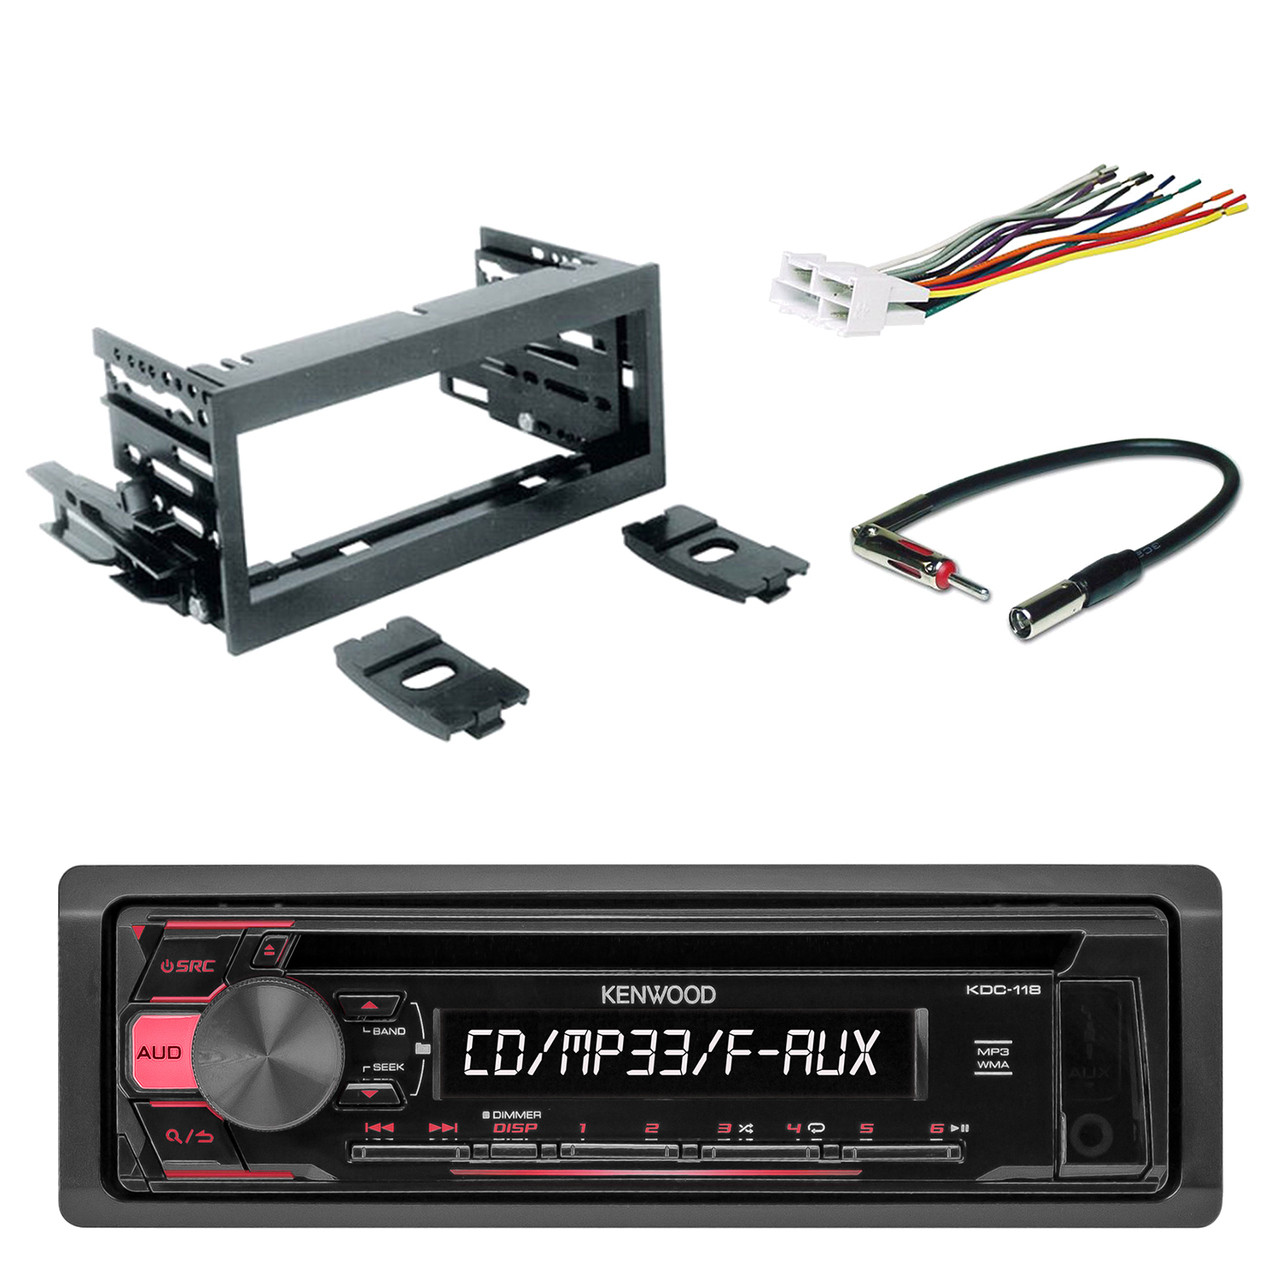 small resolution of kenwood in dash single din cd player aux car stereo receiver with scosche dash kit scosche gm micro delco antenna adapter and scosche radio wiring harness